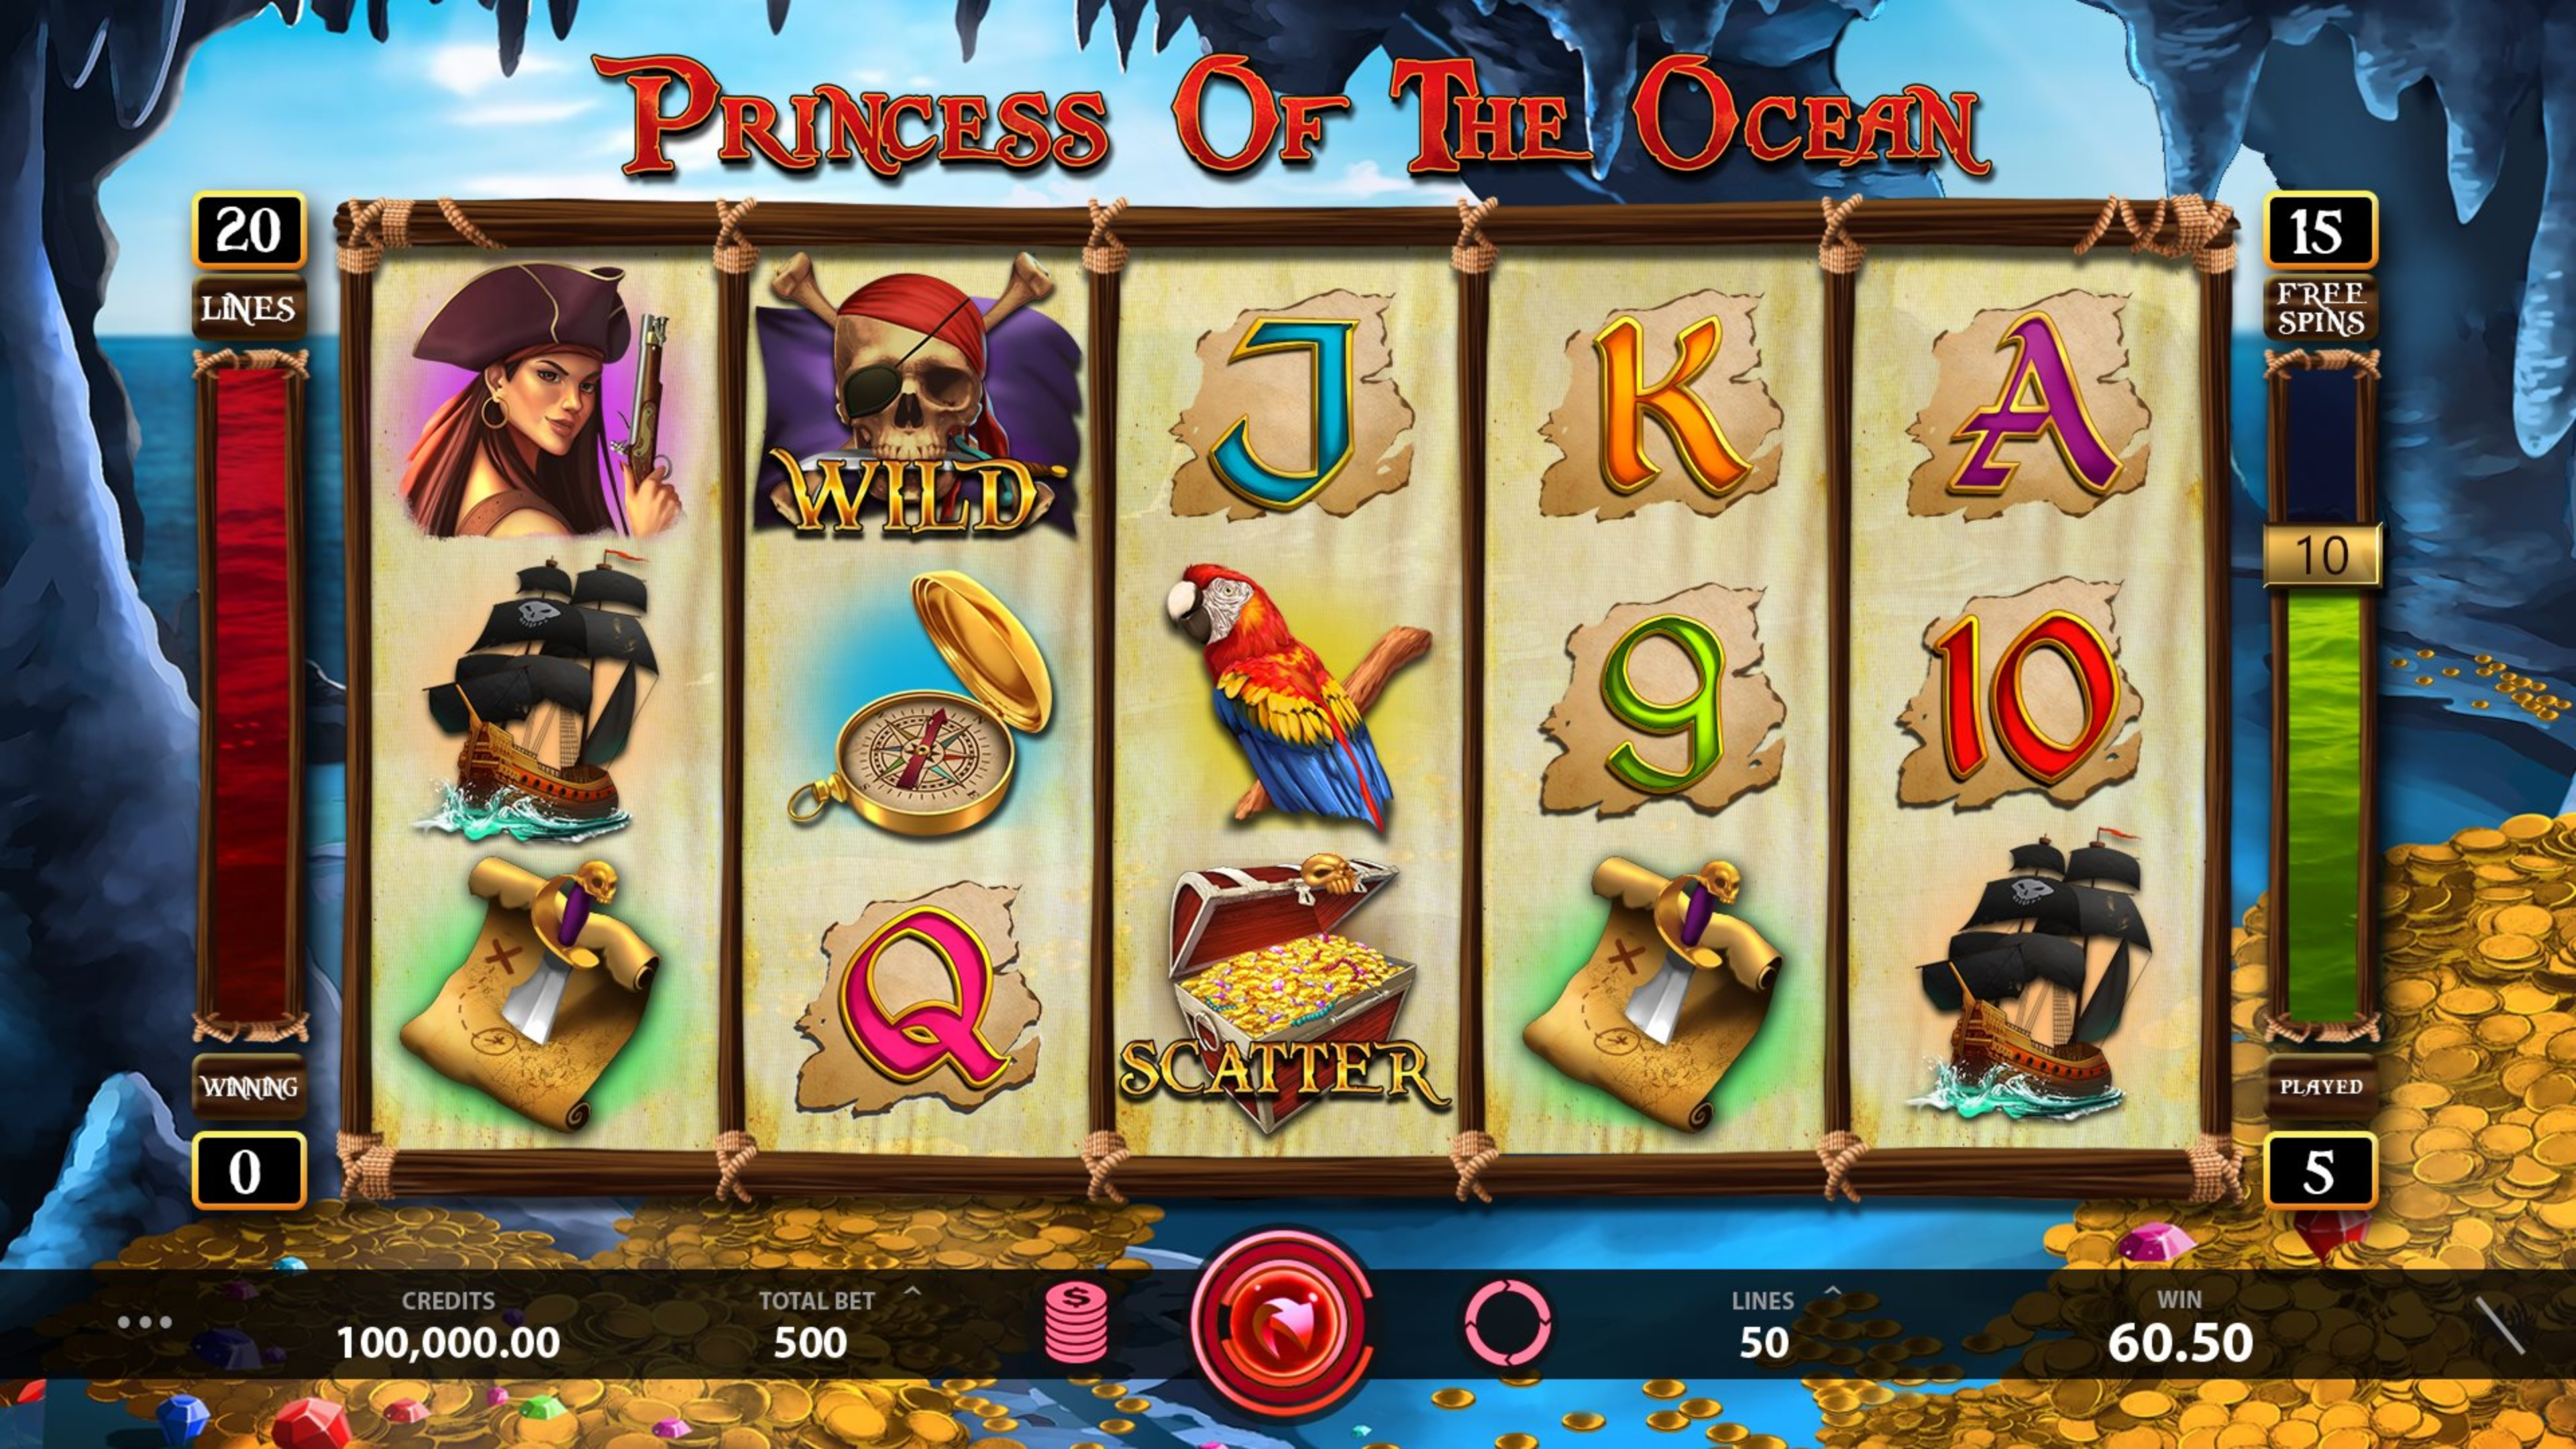 The Princess of the Ocean Online Slot Demo Game by Caleta Gaming